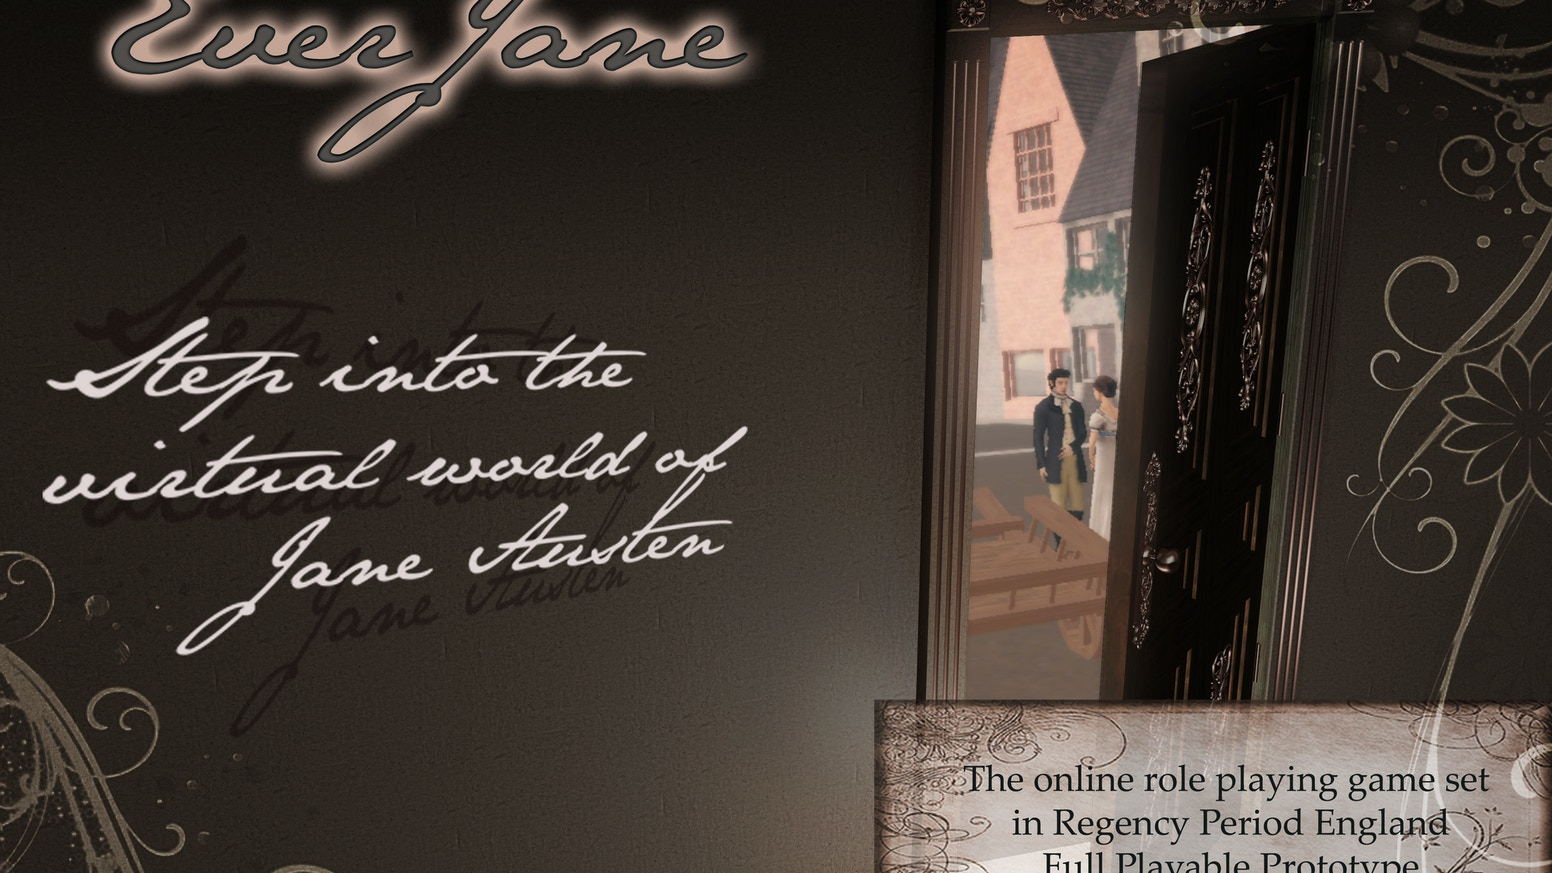 NOW IN OPEN BETAIn the virtual world of Jane Austen, it is not about kill or be killed, but invite and be invited with gossip our weapon of choice. www.everjane.com